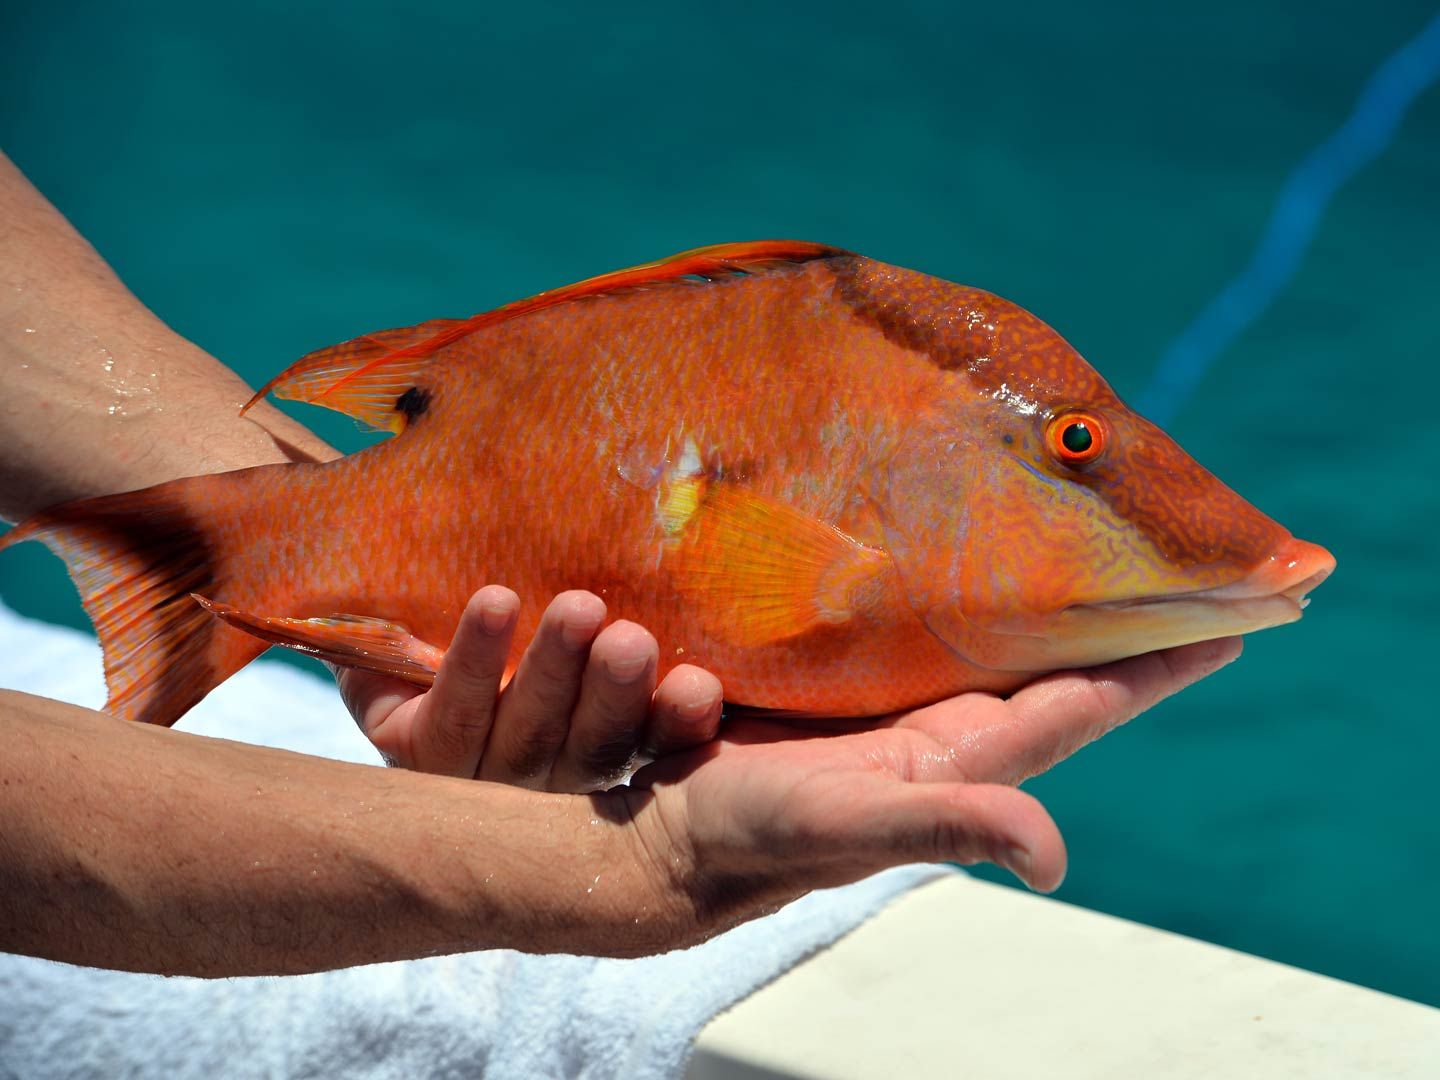 Hands holding a Hogfish on a boat